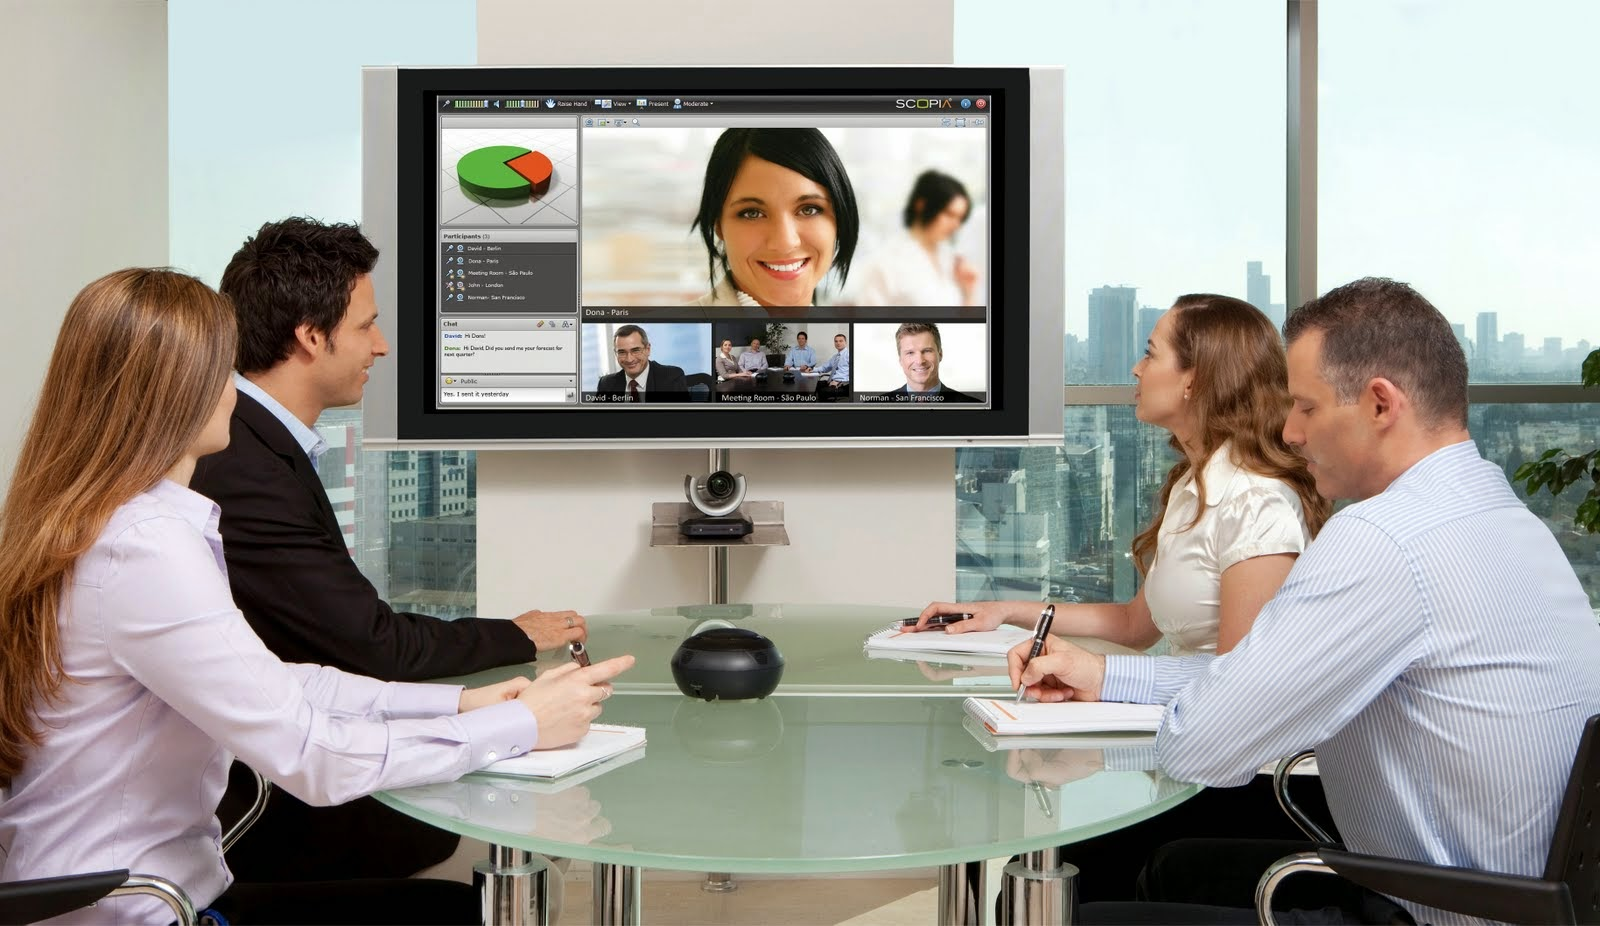 How to Get the Most Out of Your Video Conferencing Platform